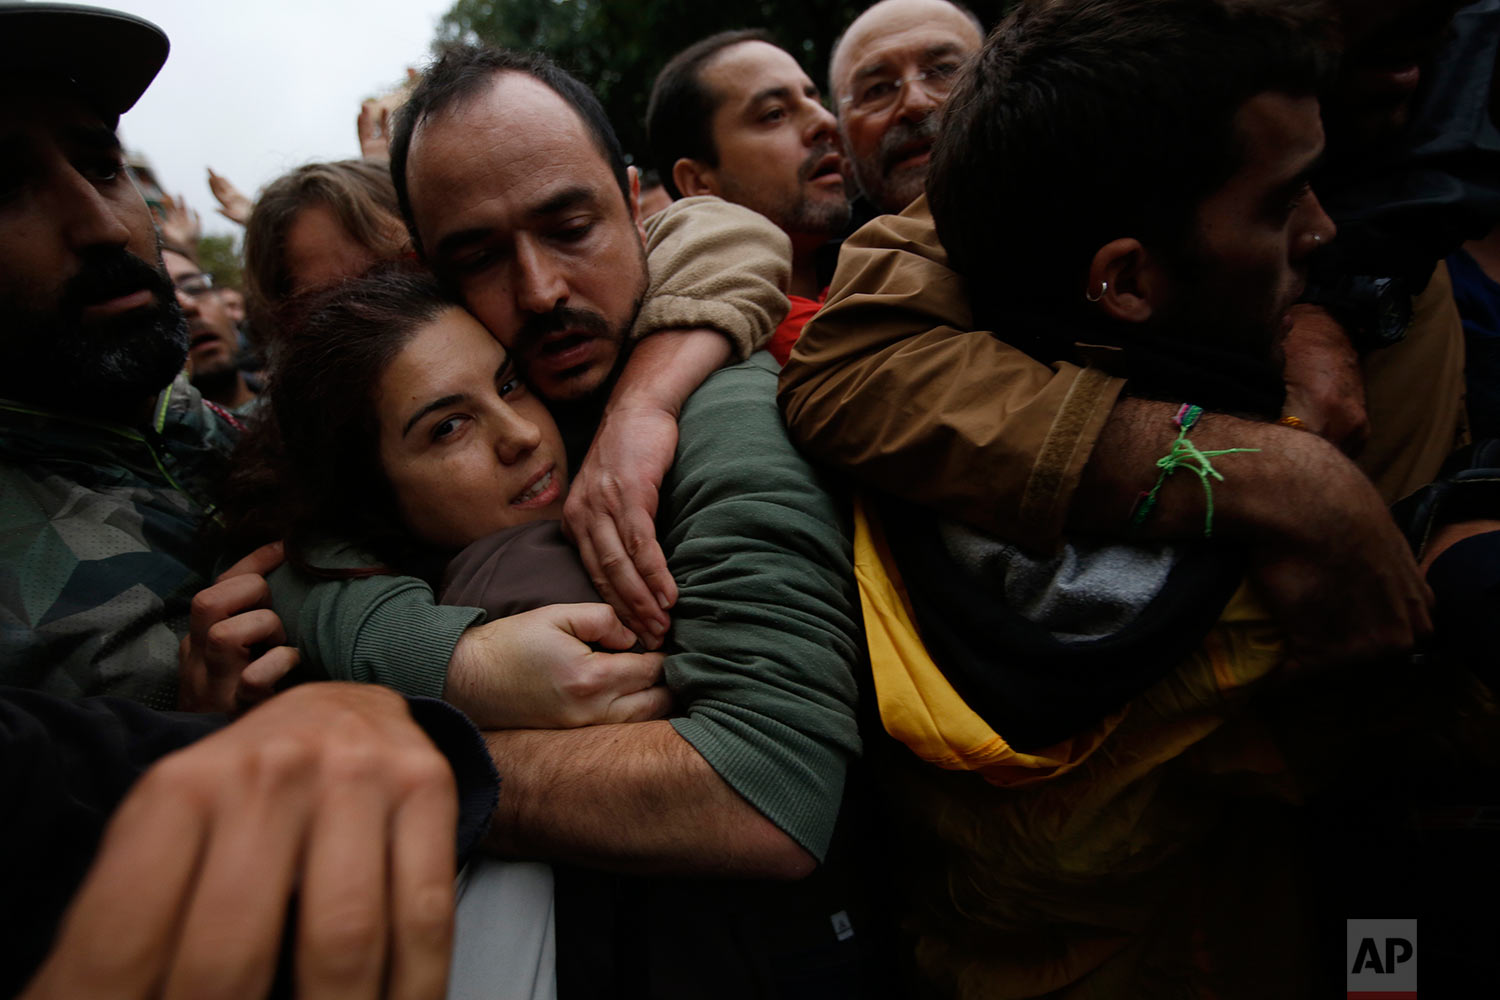 Pro-referendum supporters embrace each other as Spanish National Police tries to remove them from the Ramon Llull school assigned to be a polling station by the Catalan government in Barcelona, Spain, early Sunday, 1 Oct. 2017. Catalan pro-referendum supporters vowed to ignore a police ultimatum to leave the schools they are occupying to use in a vote seeking independence from Spain. (AP Photo/Emilio Morenatti)